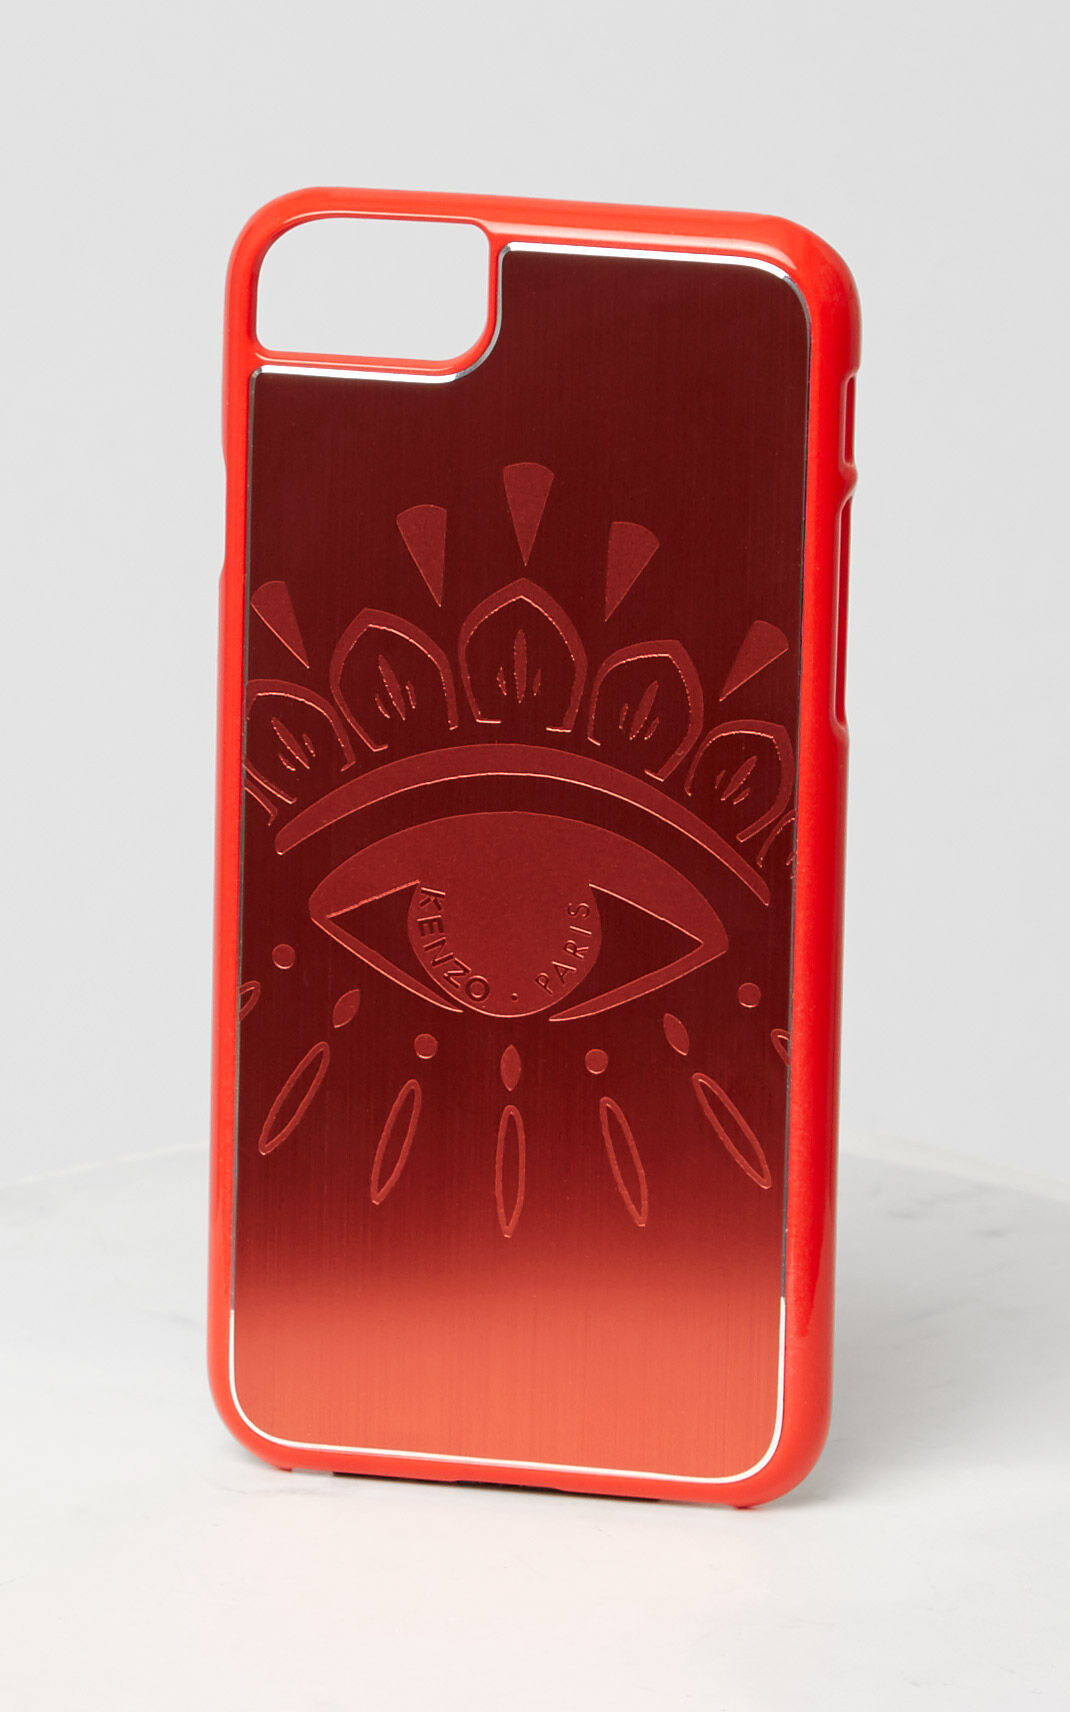 MEDIUM ORANGE Eye iPhone 7/8 case for unisex KENZO